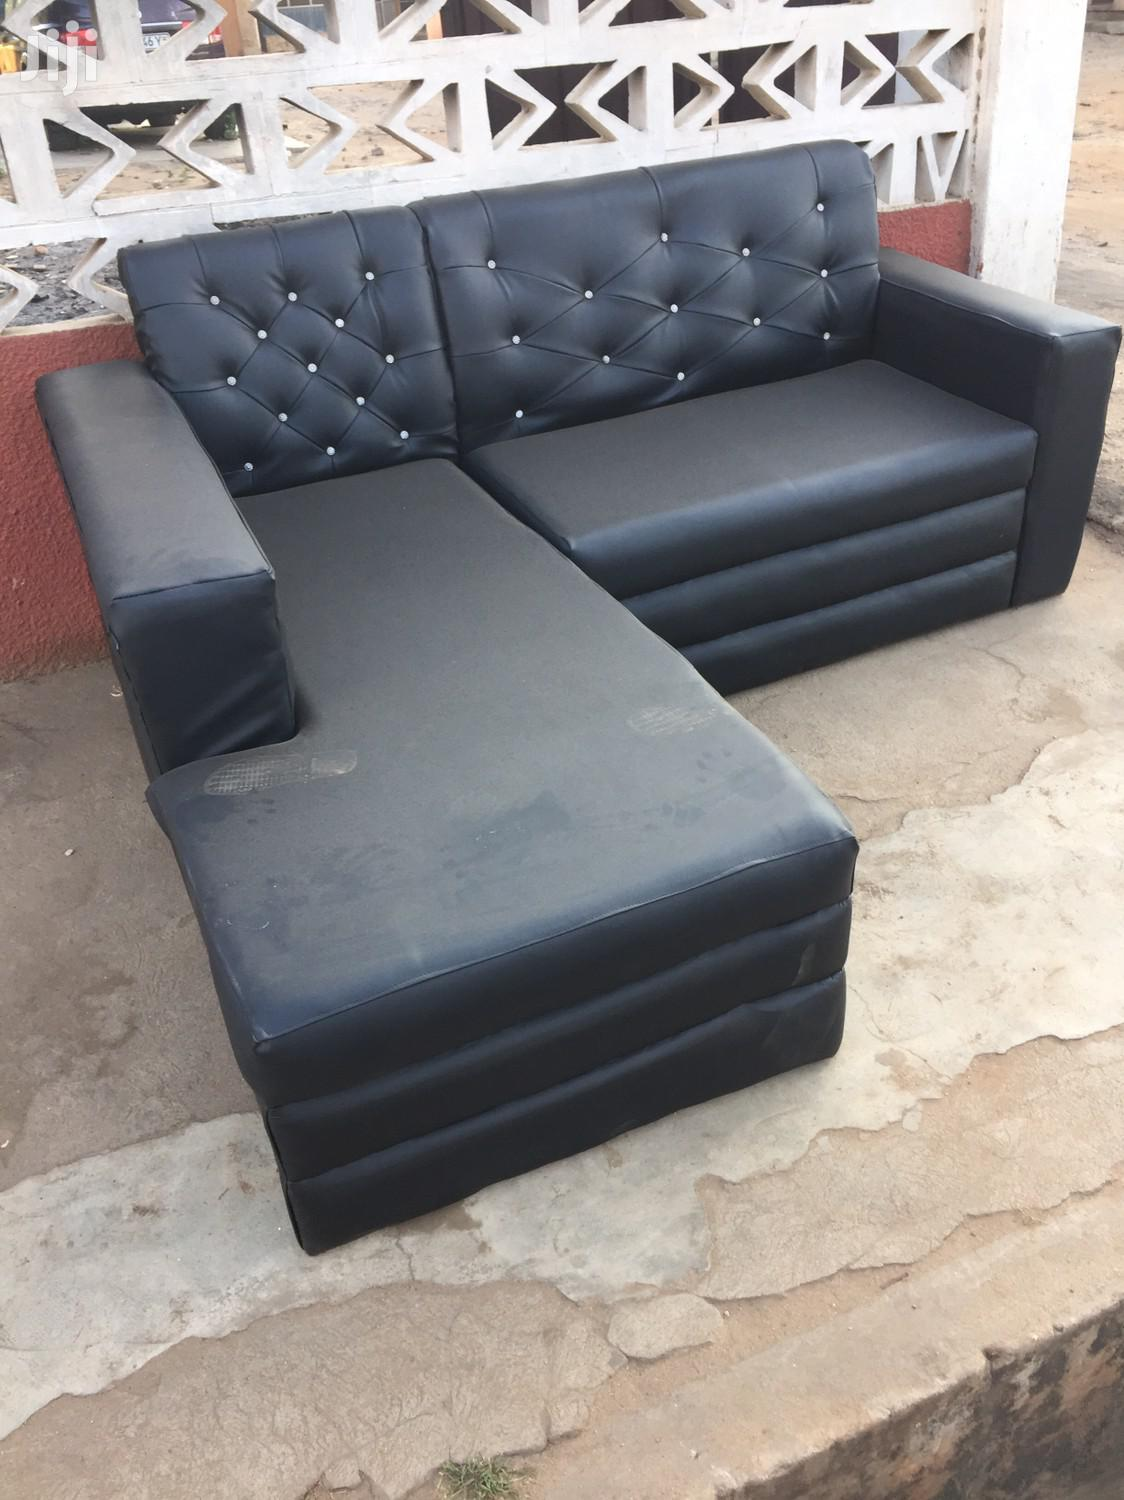 Affordable L Shaped Sofa at a Cool Price.